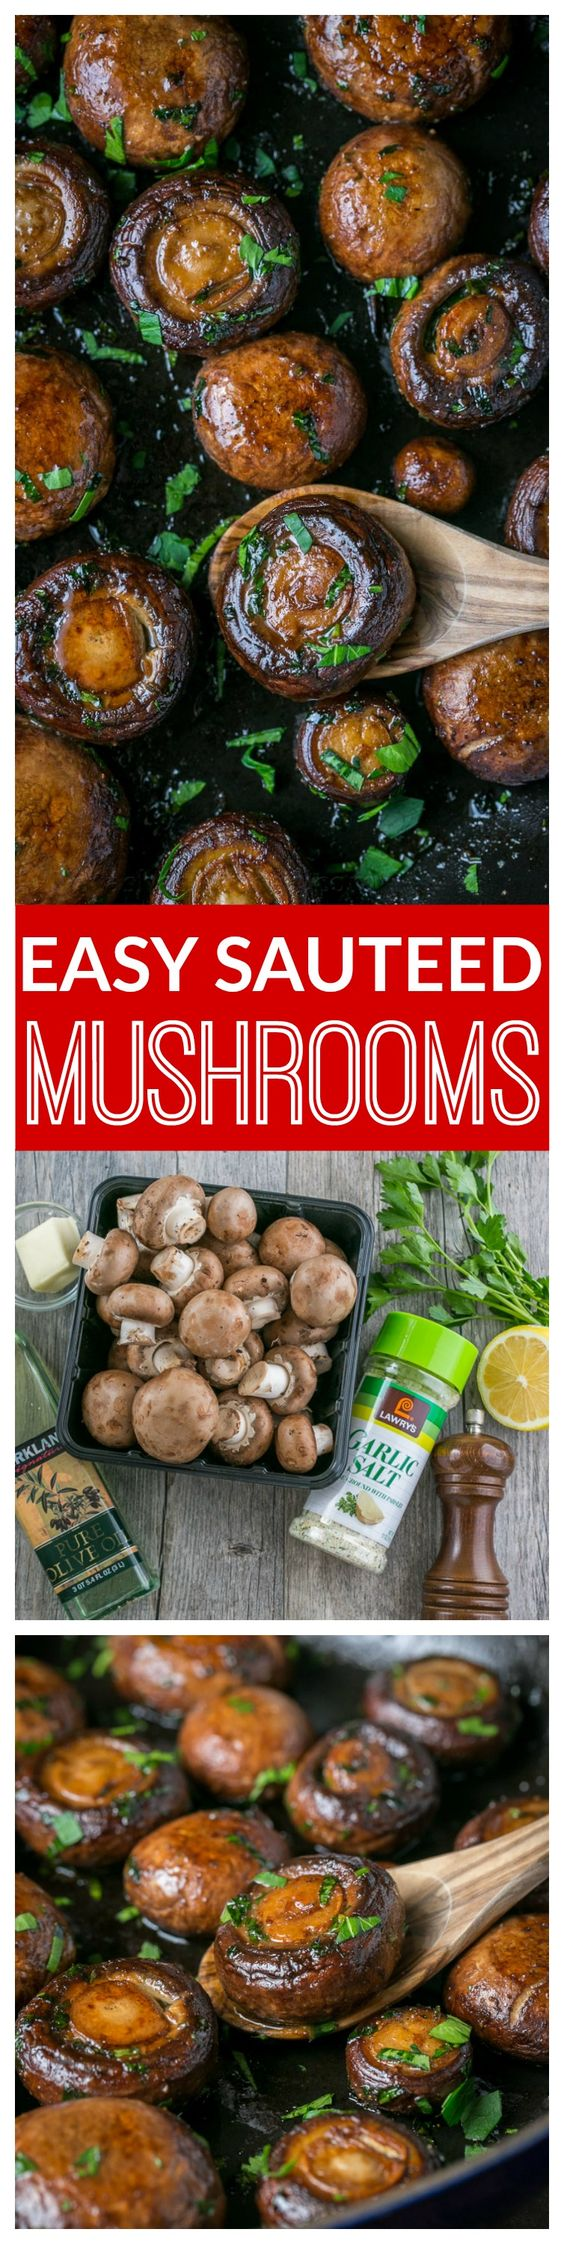 These are so easy and tasty! Serve sauteed mushrooms as a side dish, appetizer, over steak, on a burger (yum!), in gravy - so versatile!